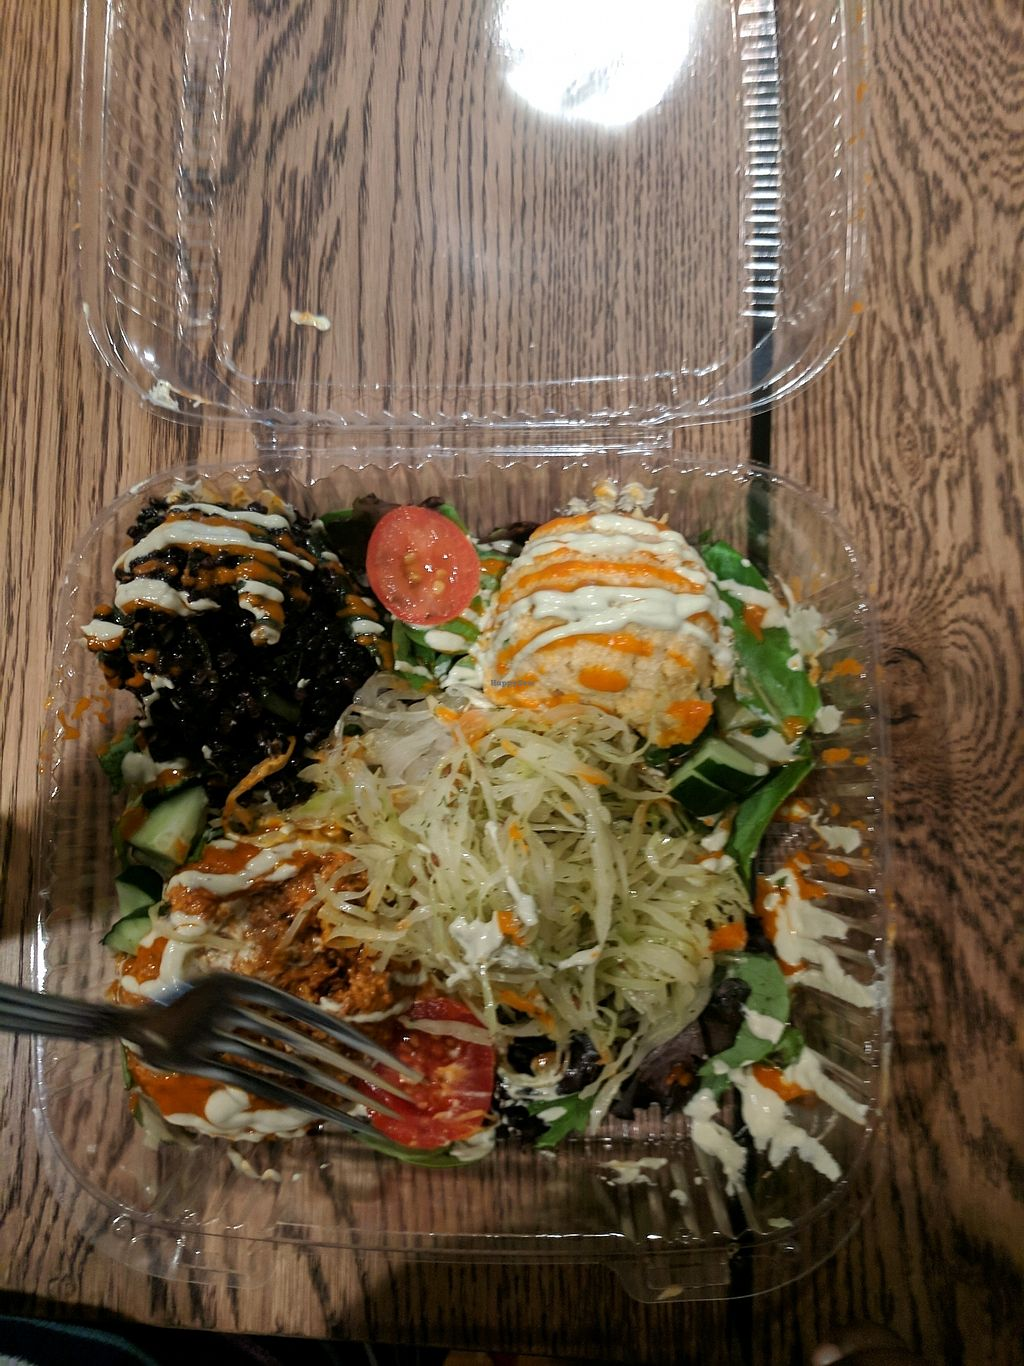 """Photo of All The Way Live  by <a href=""""/members/profile/LocdVegan"""">LocdVegan</a> <br/>So yummy ? <br/> October 2, 2017  - <a href='/contact/abuse/image/43939/310876'>Report</a>"""